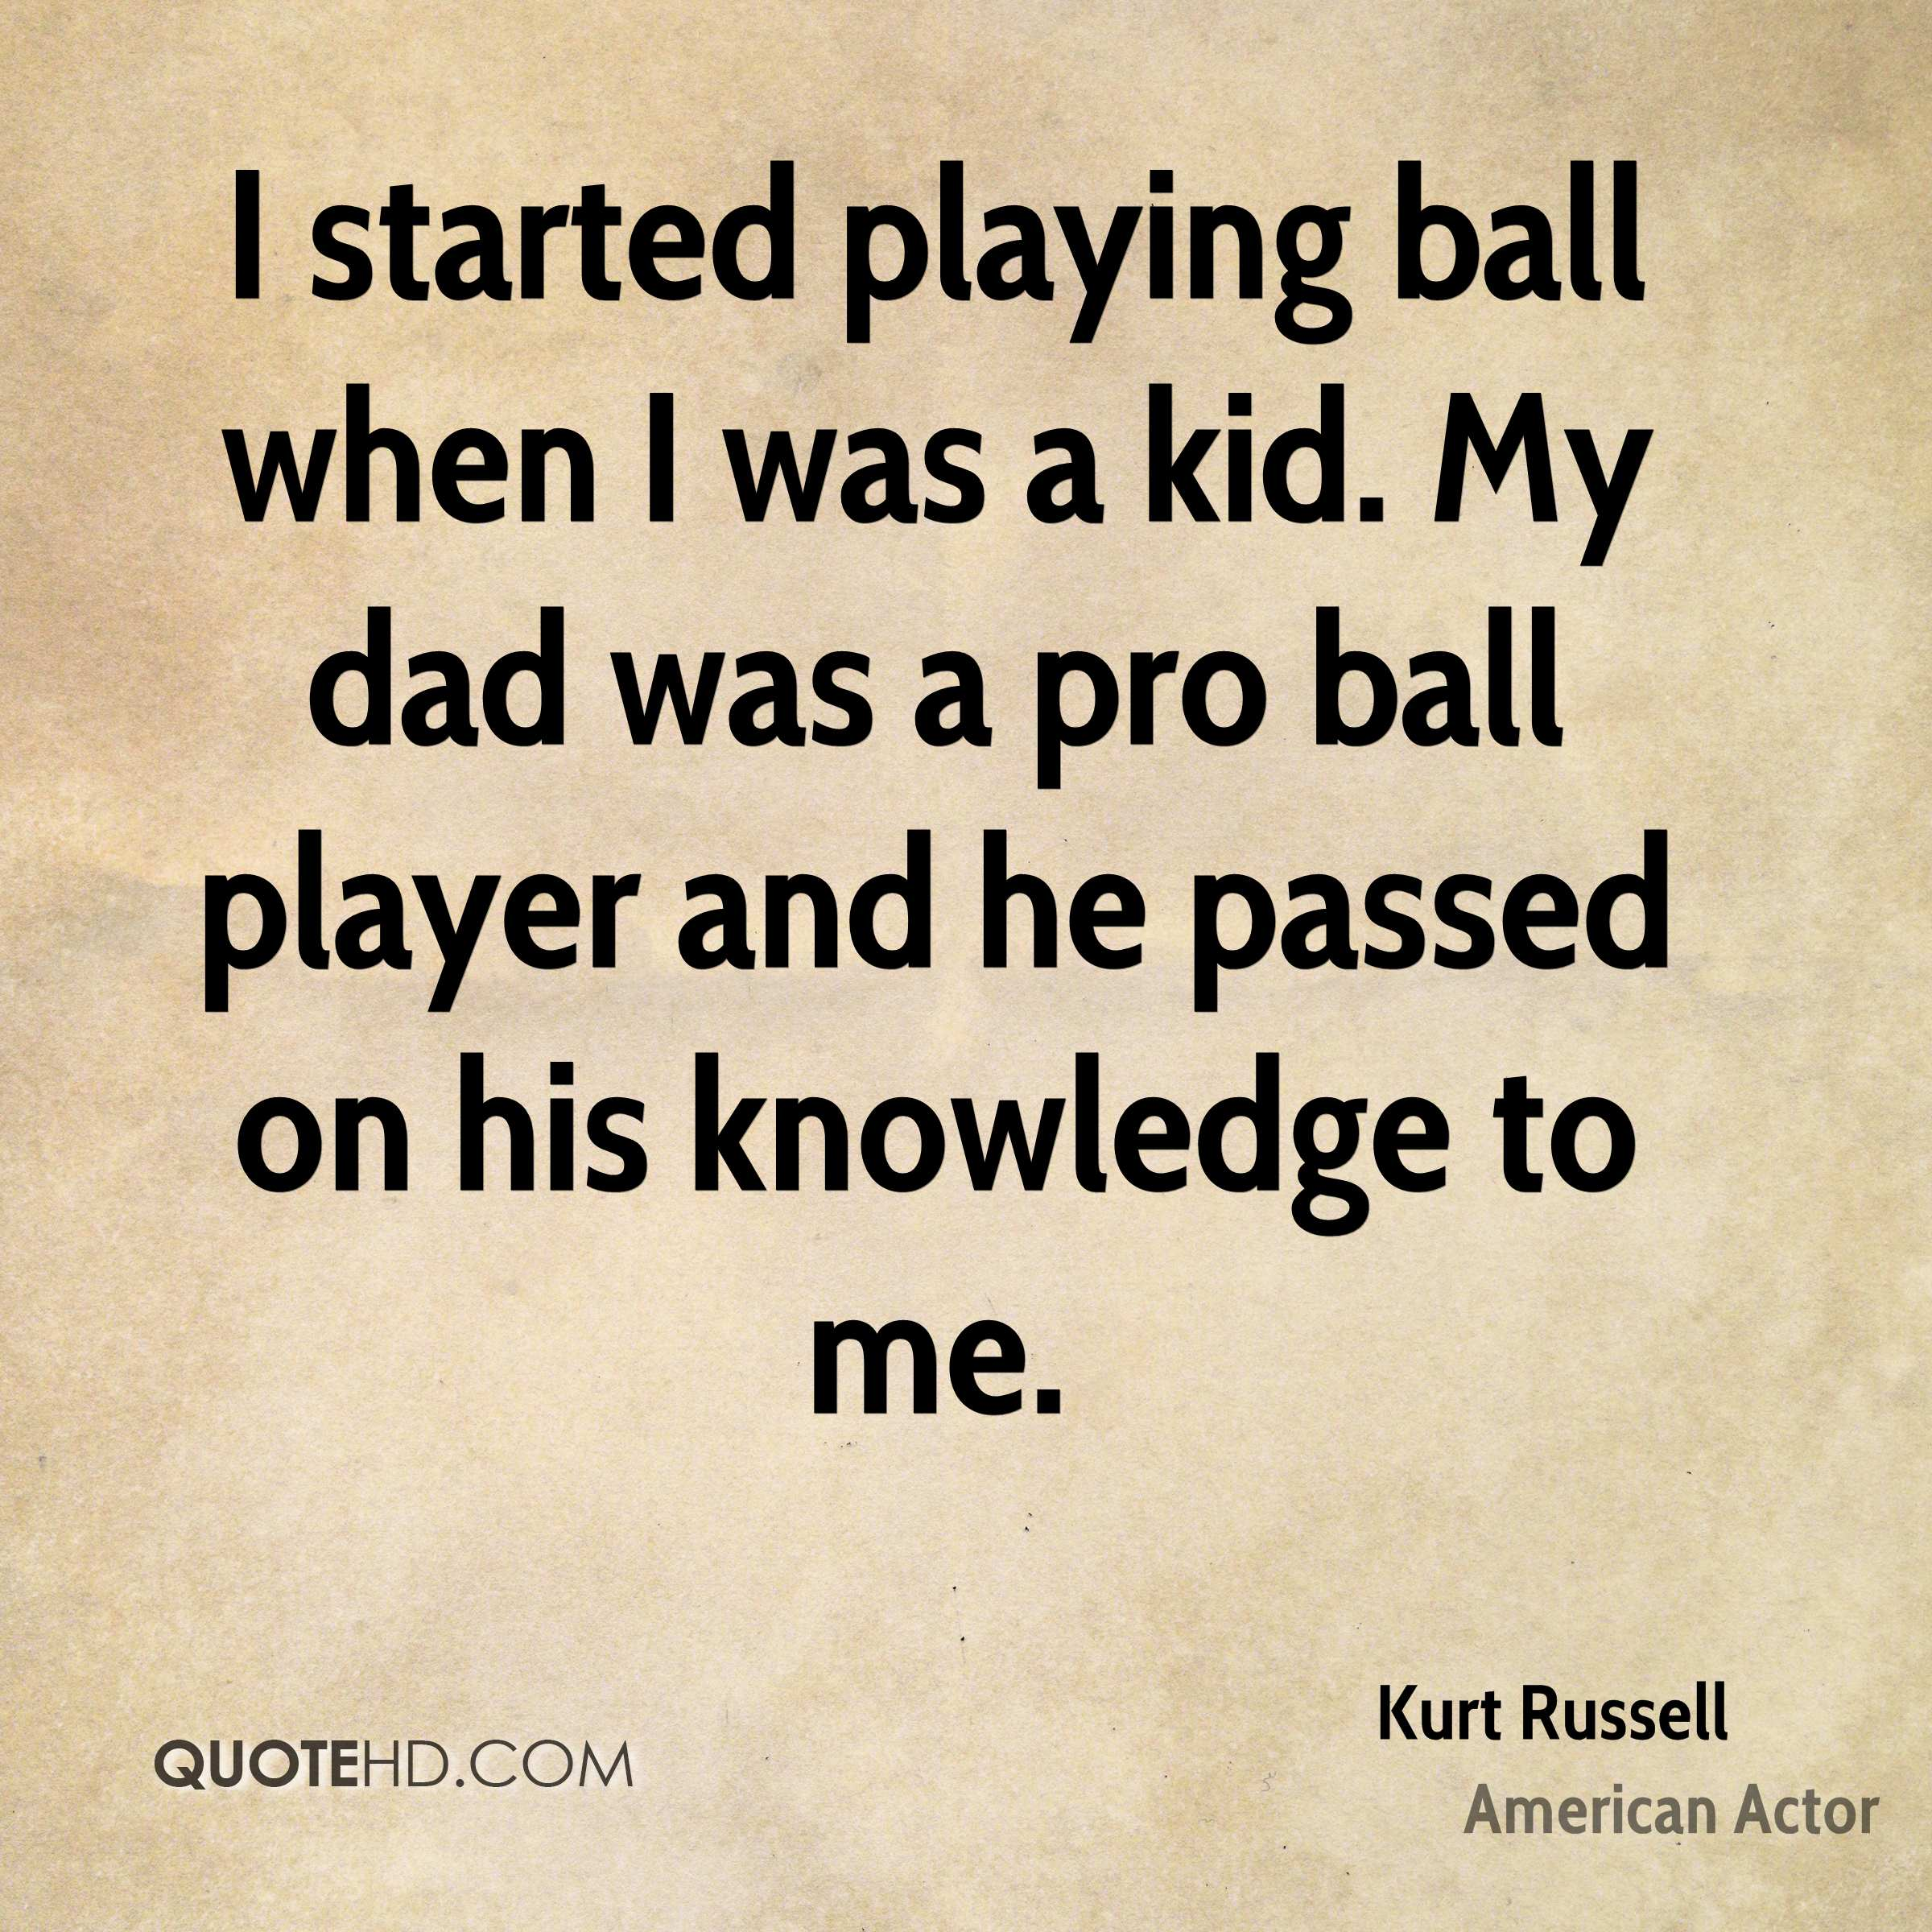 I started playing ball when I was a kid. My dad was a pro ball player and he passed on his knowledge to me.